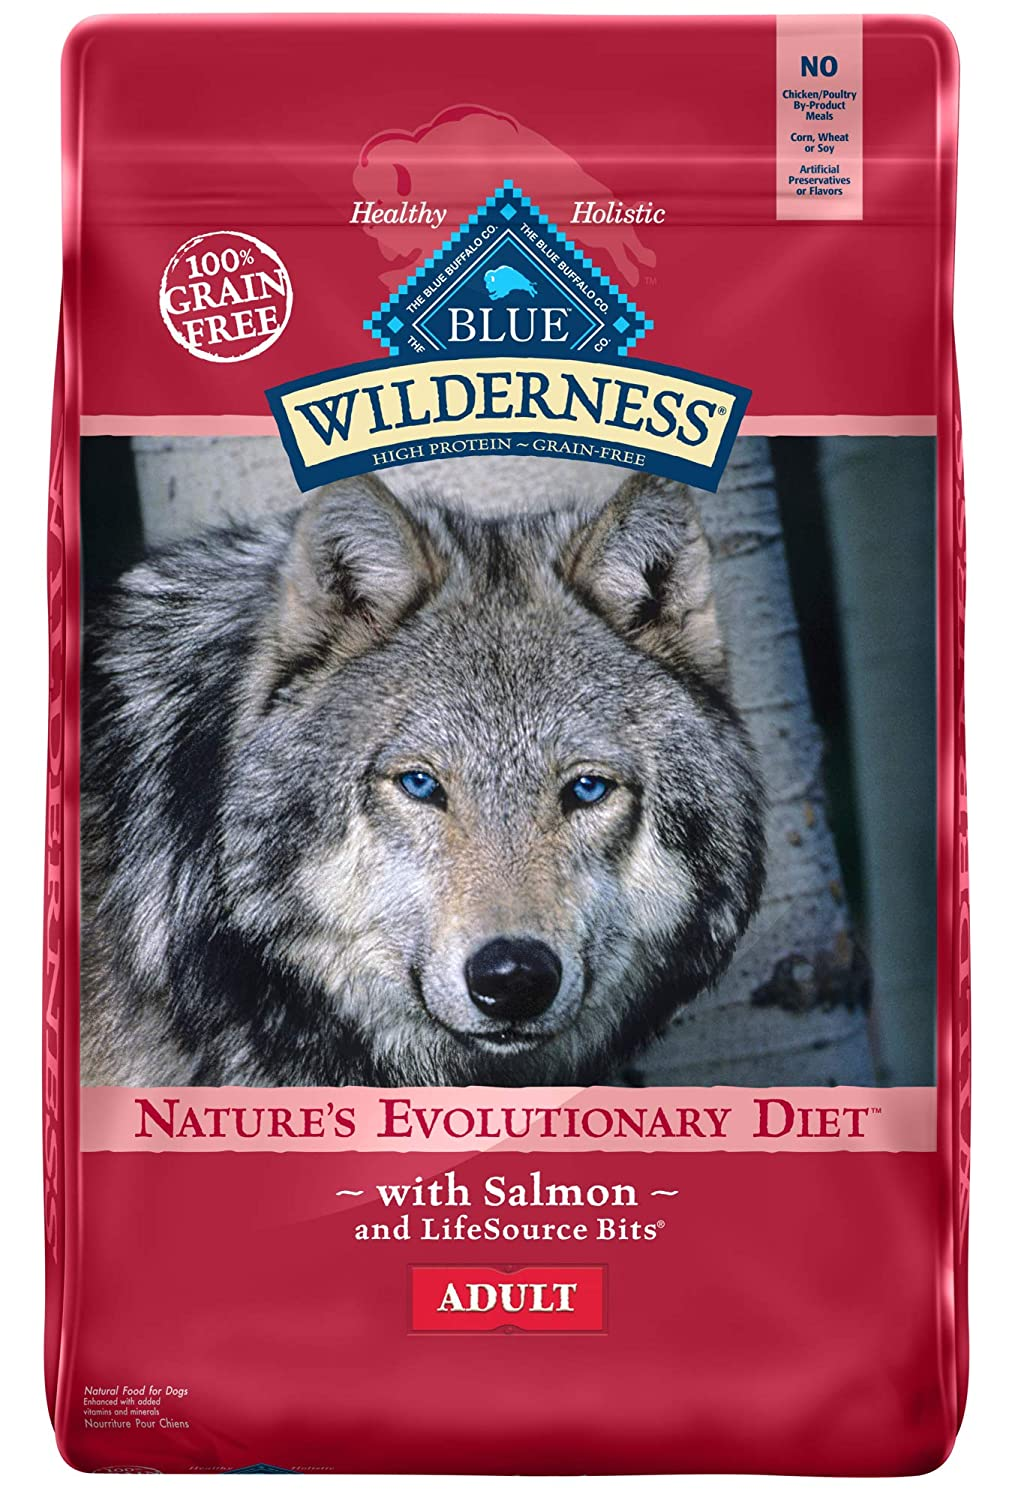 8. Blue Buffalo Wilderness Salmon Recipe Grain-Free Dry Dog Food